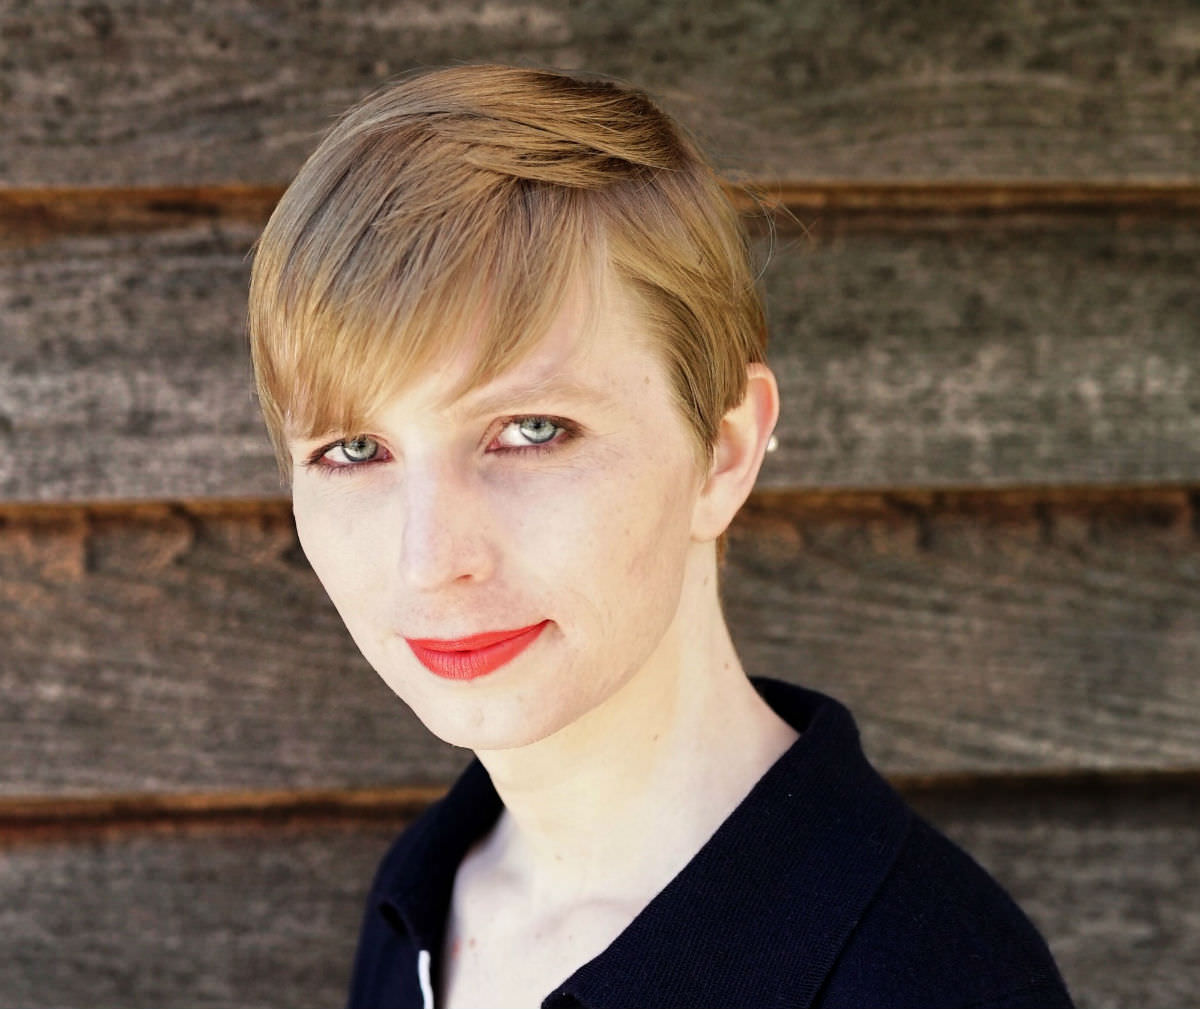 Chelsea Manning barred from entering Canada